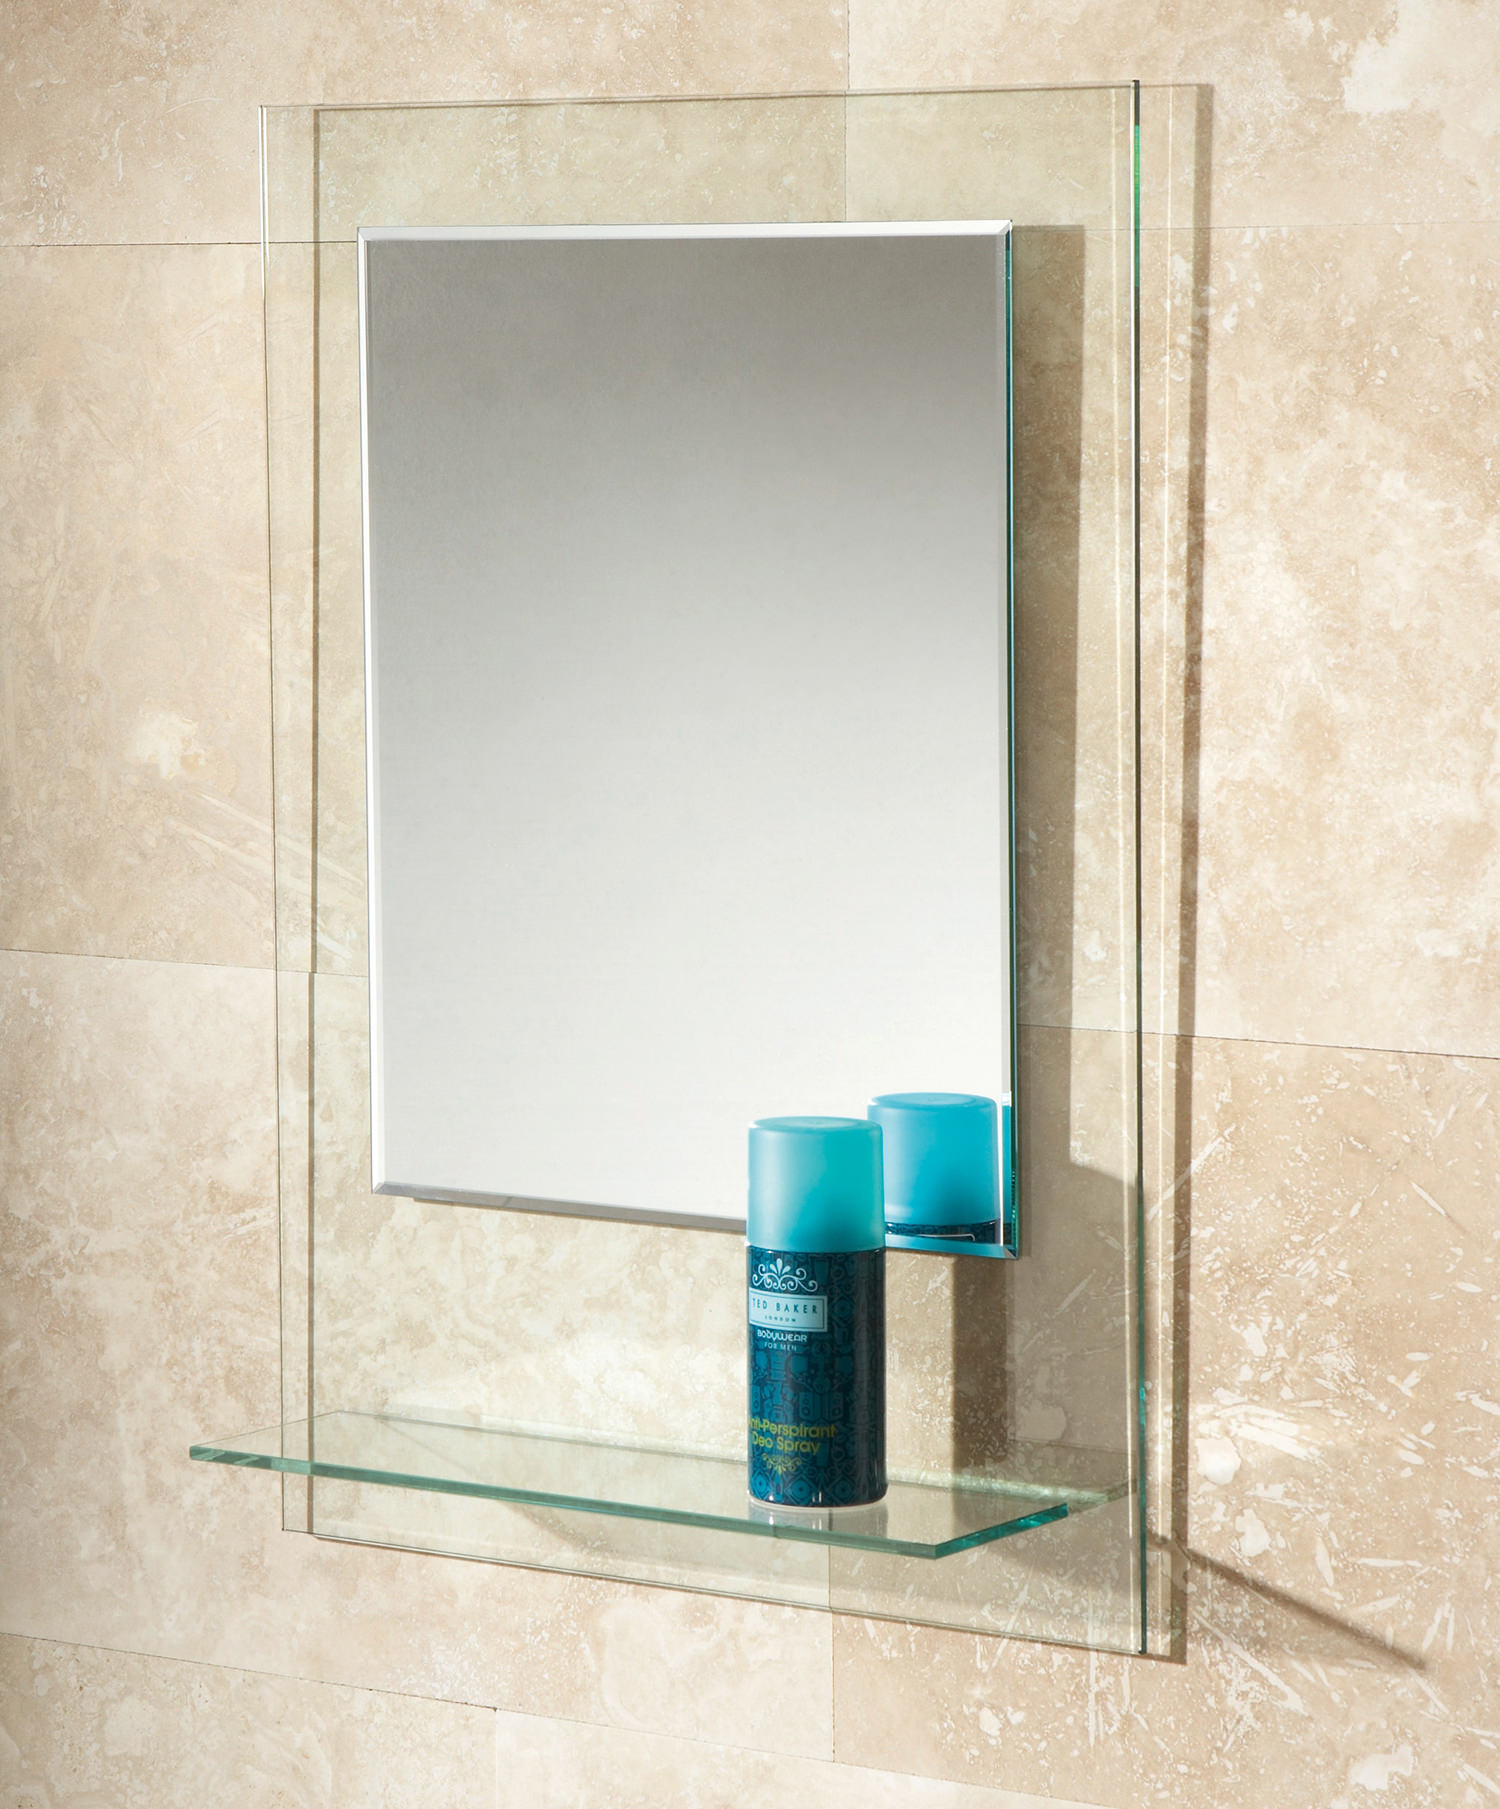 Hib Fuzion Bevelled Edge Mirror With Glass Shelf 72300100